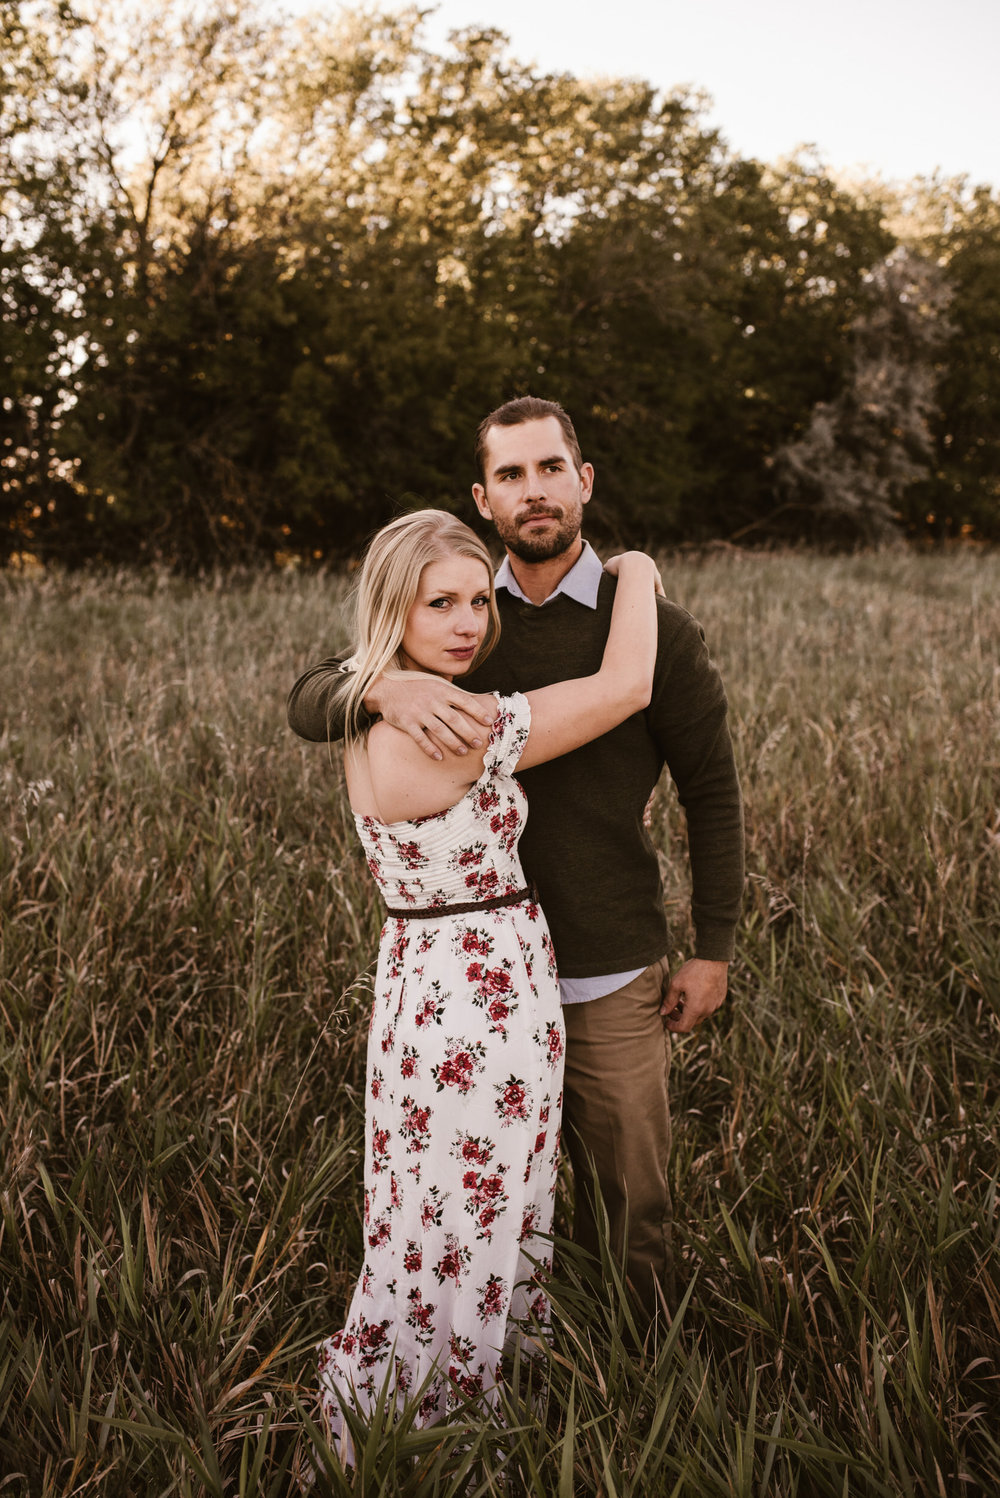 Nebraska Engagement Photographer Kaylie Sirek Photography 09.jpg